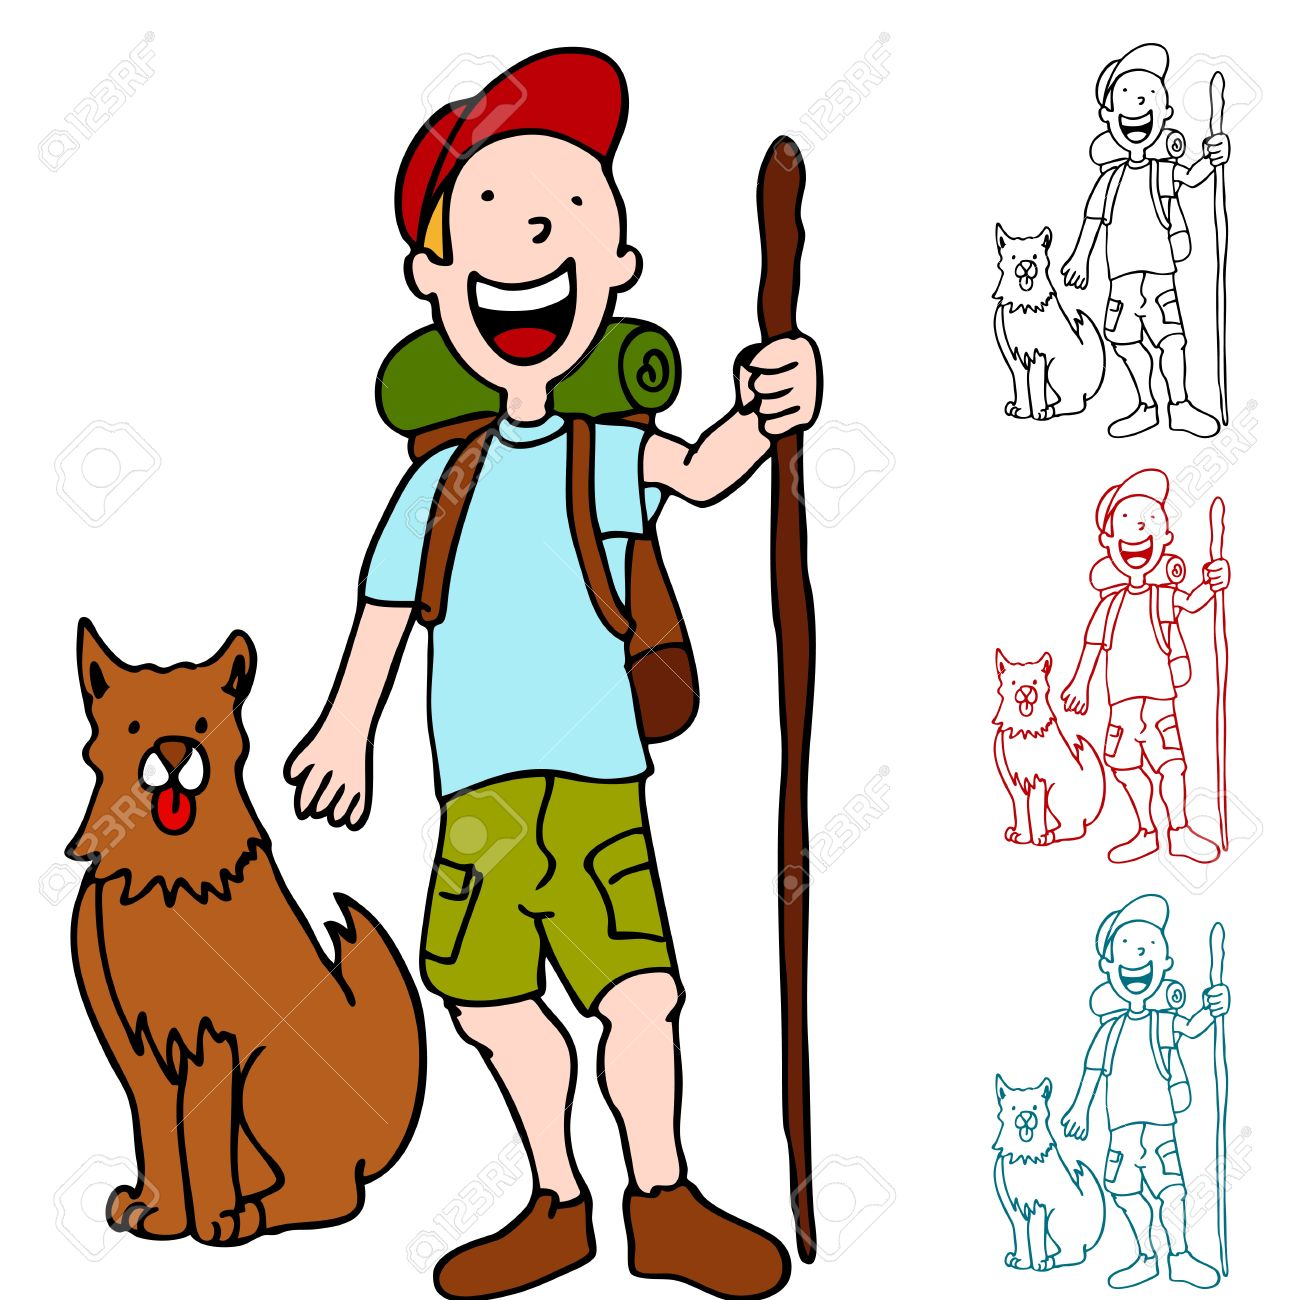 An Image Of A Man Hiking With His Dog. Royalty Free Cliparts.